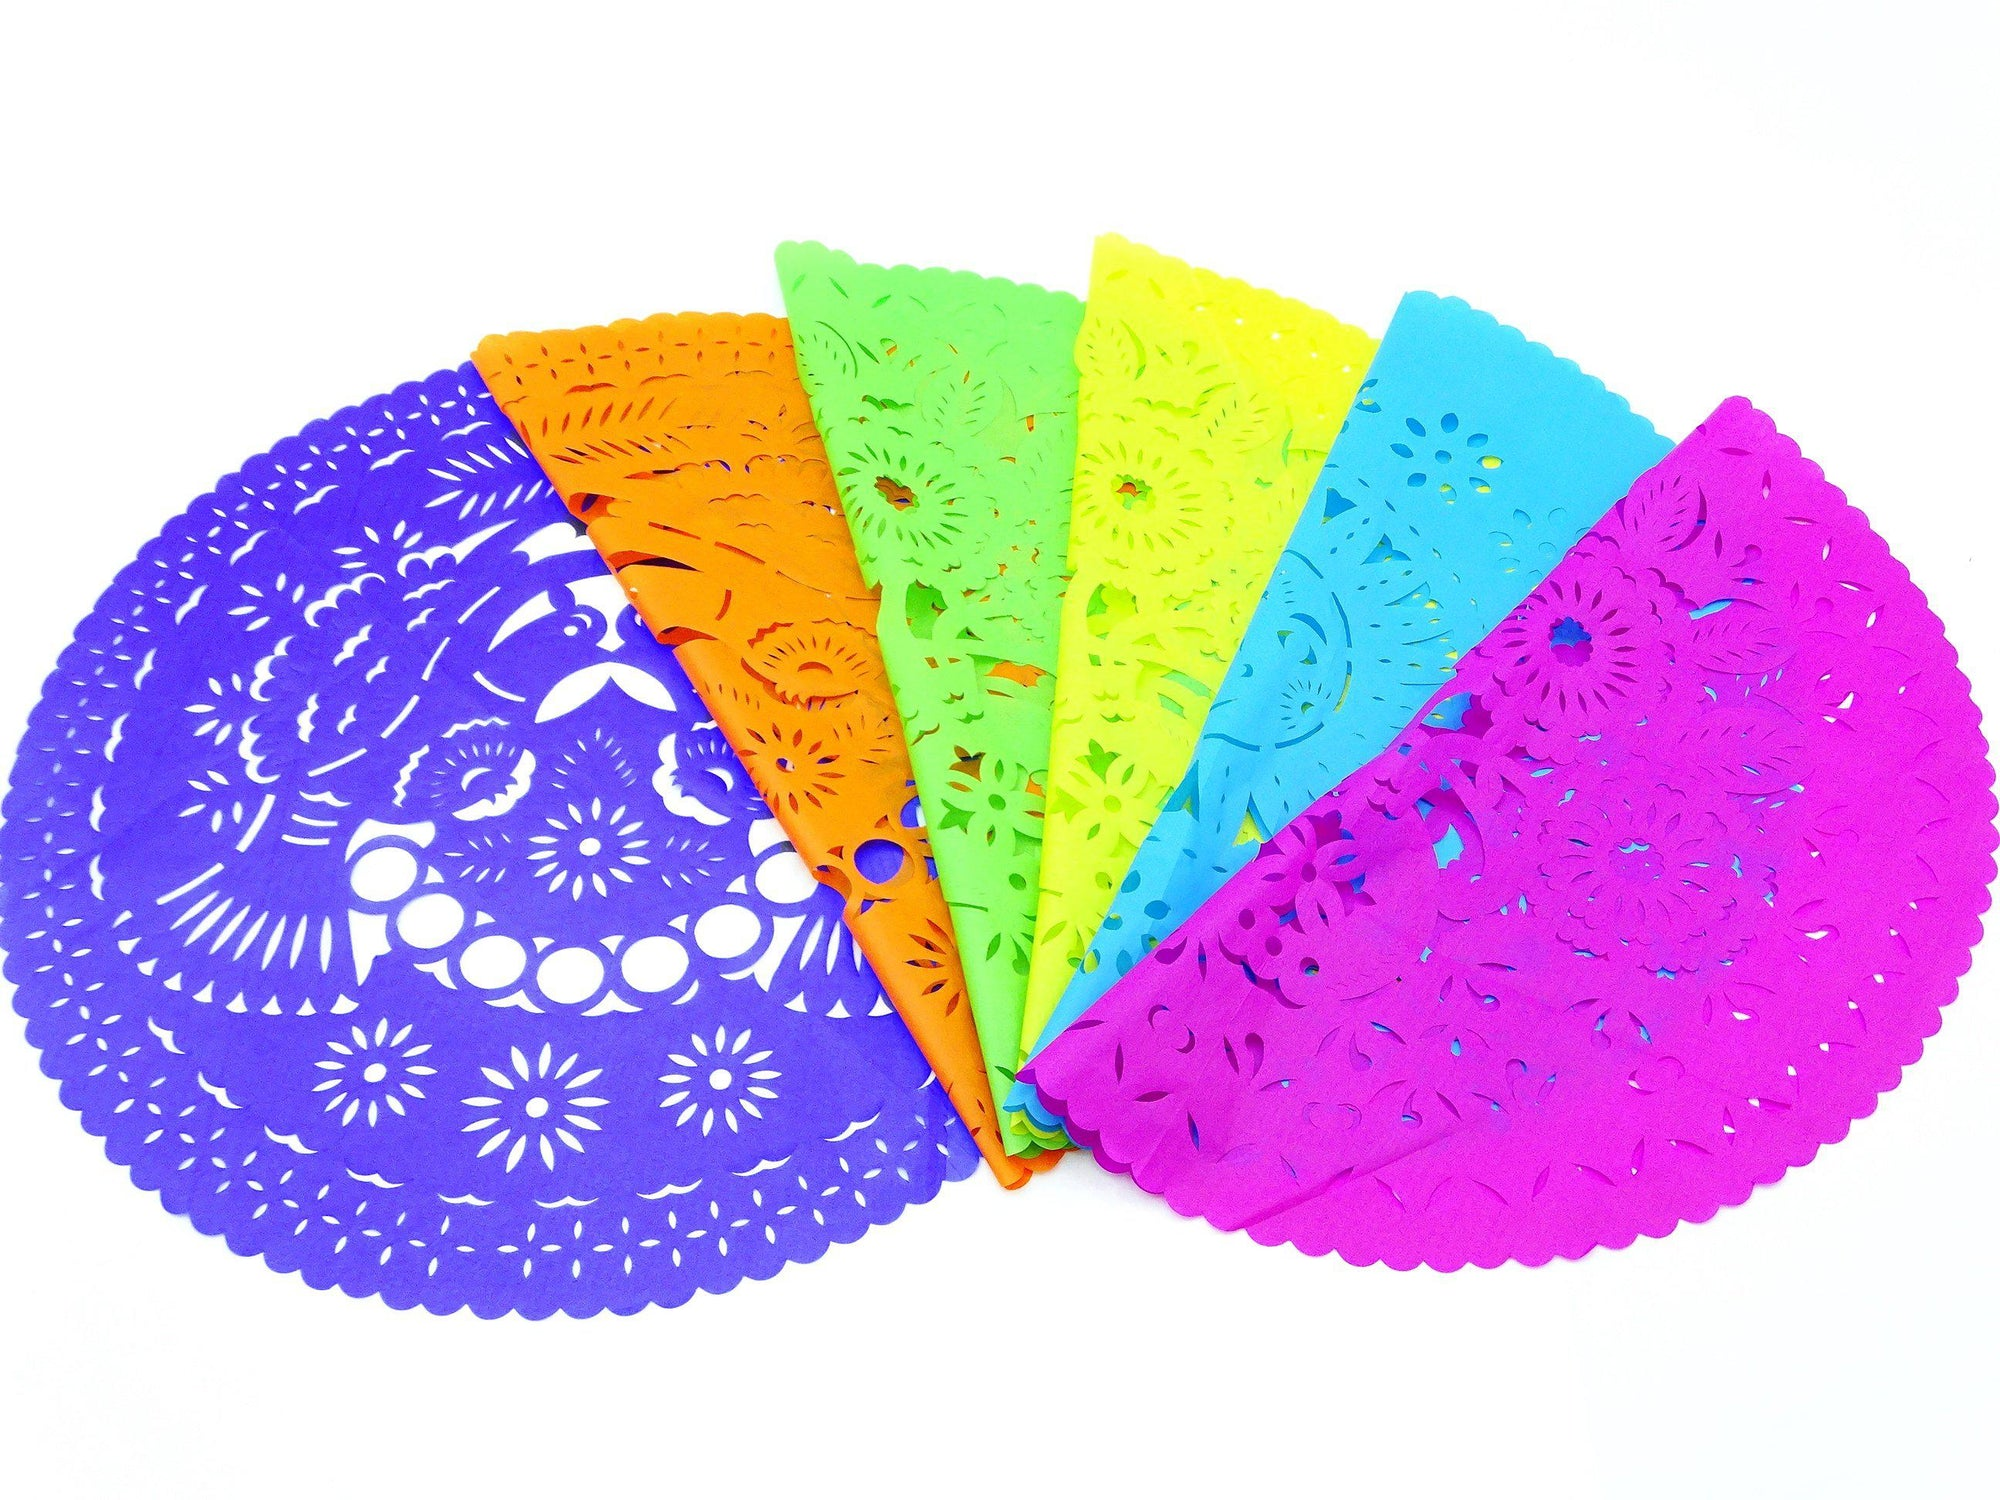 4 Papel picado place mats, Mexican Party decorations